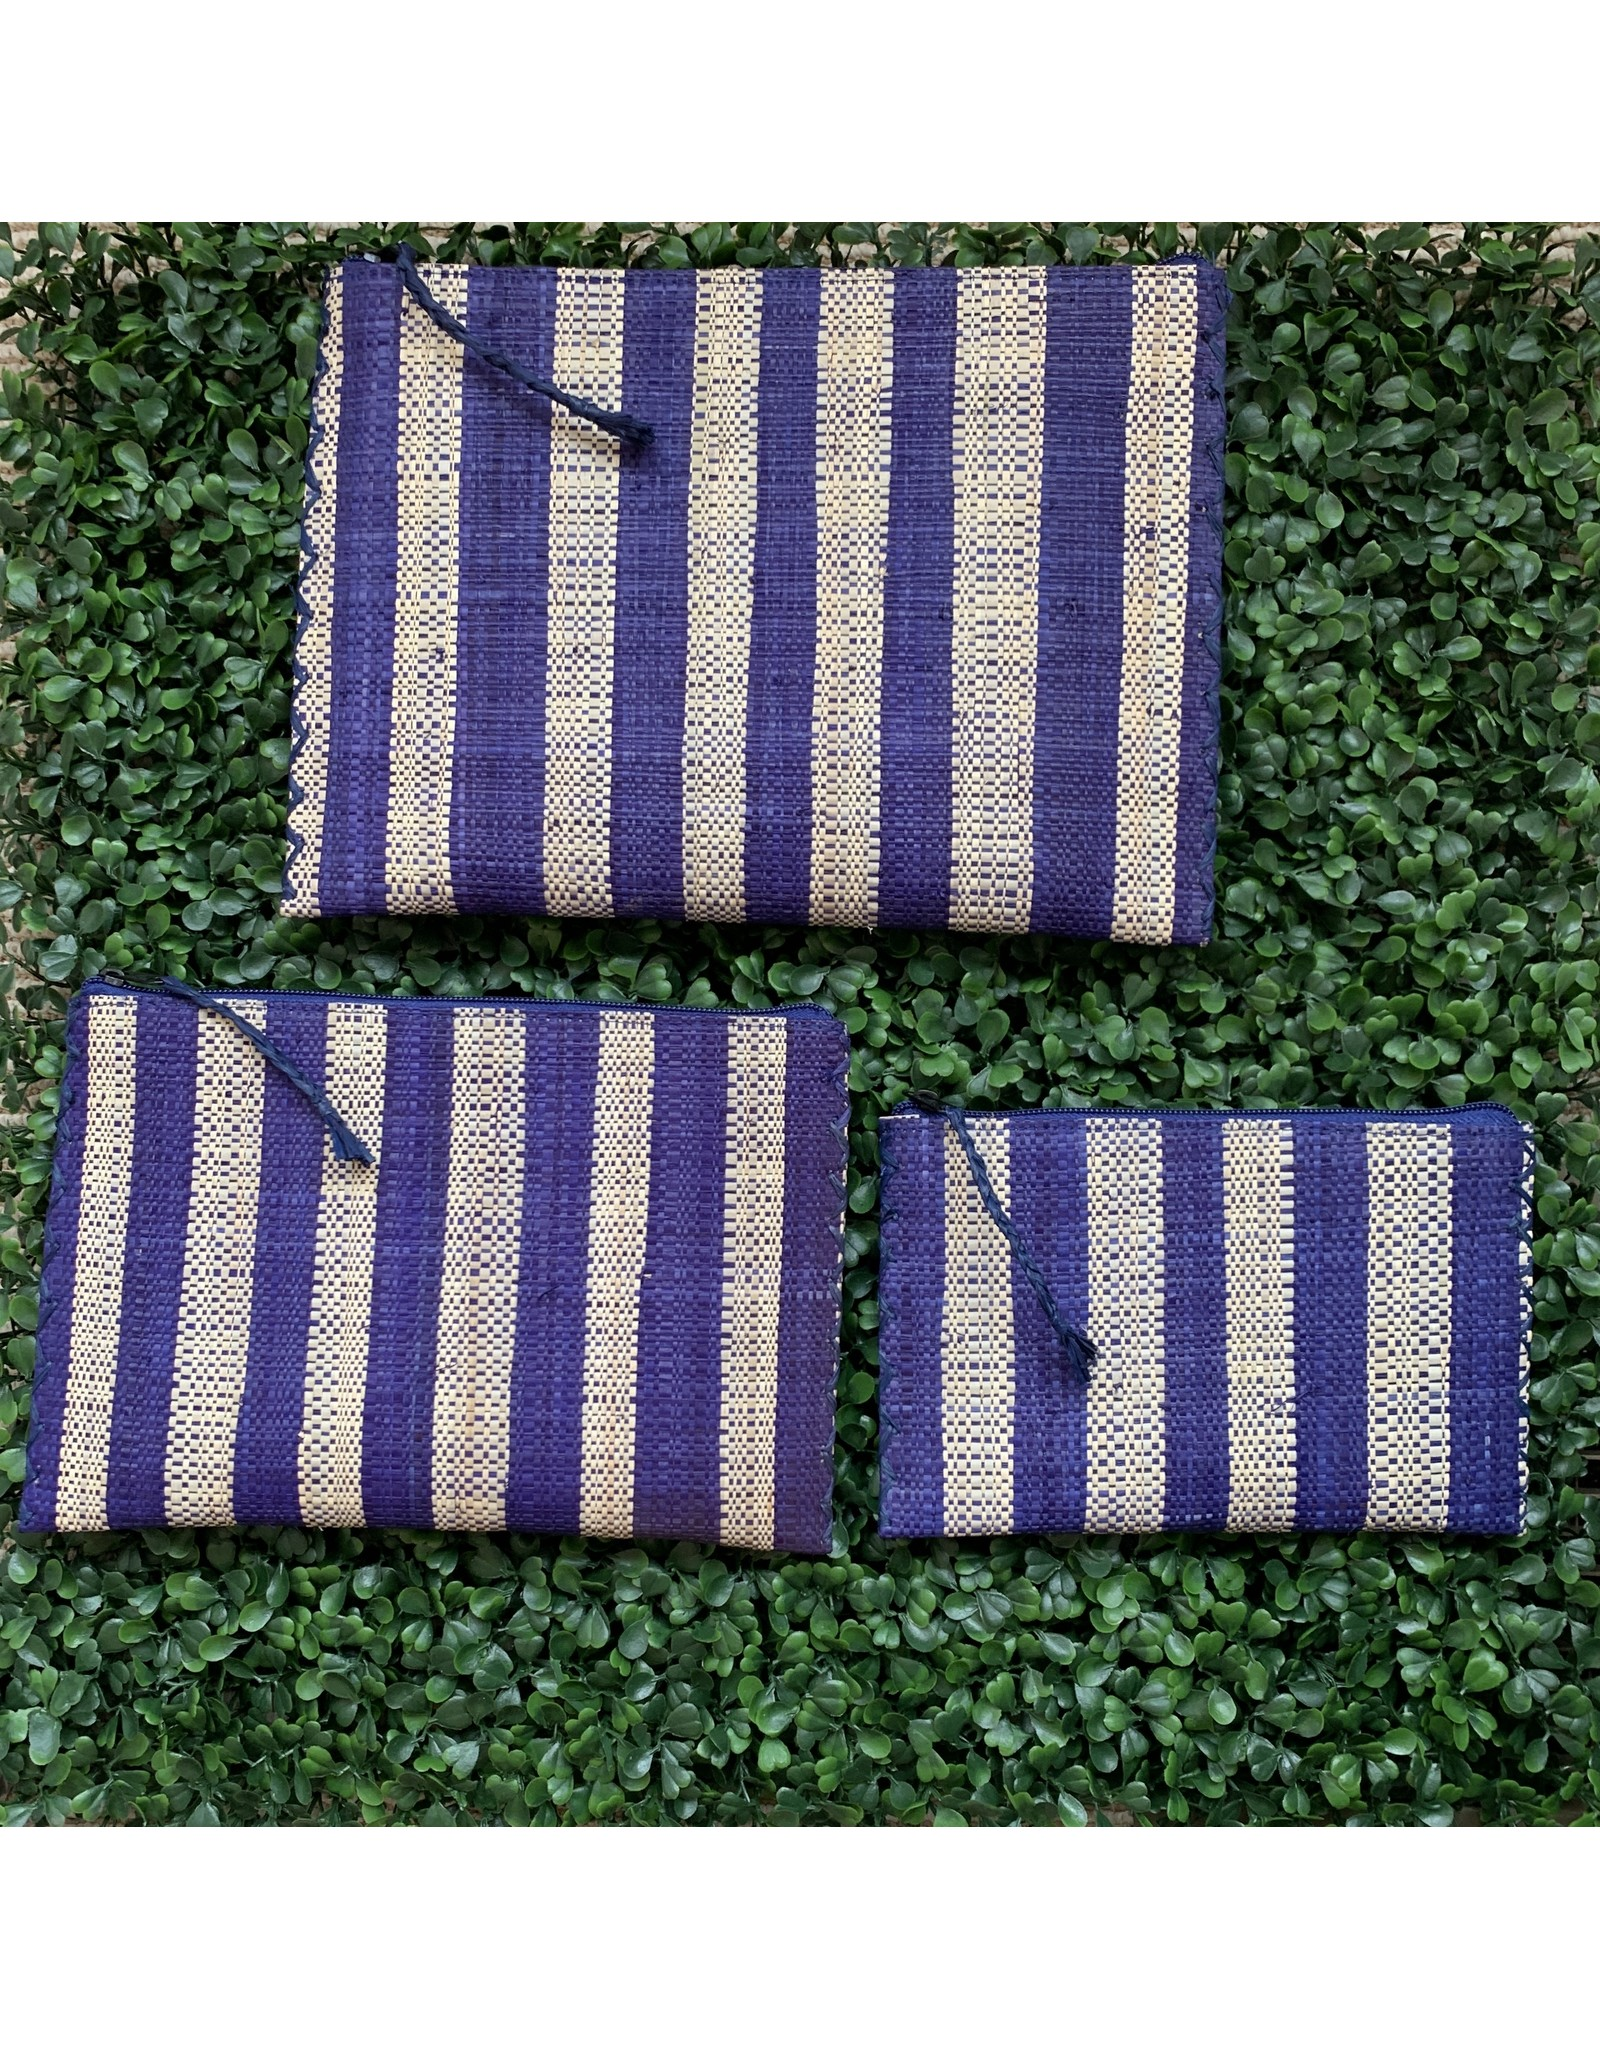 Party Pouch in Purple Stripe